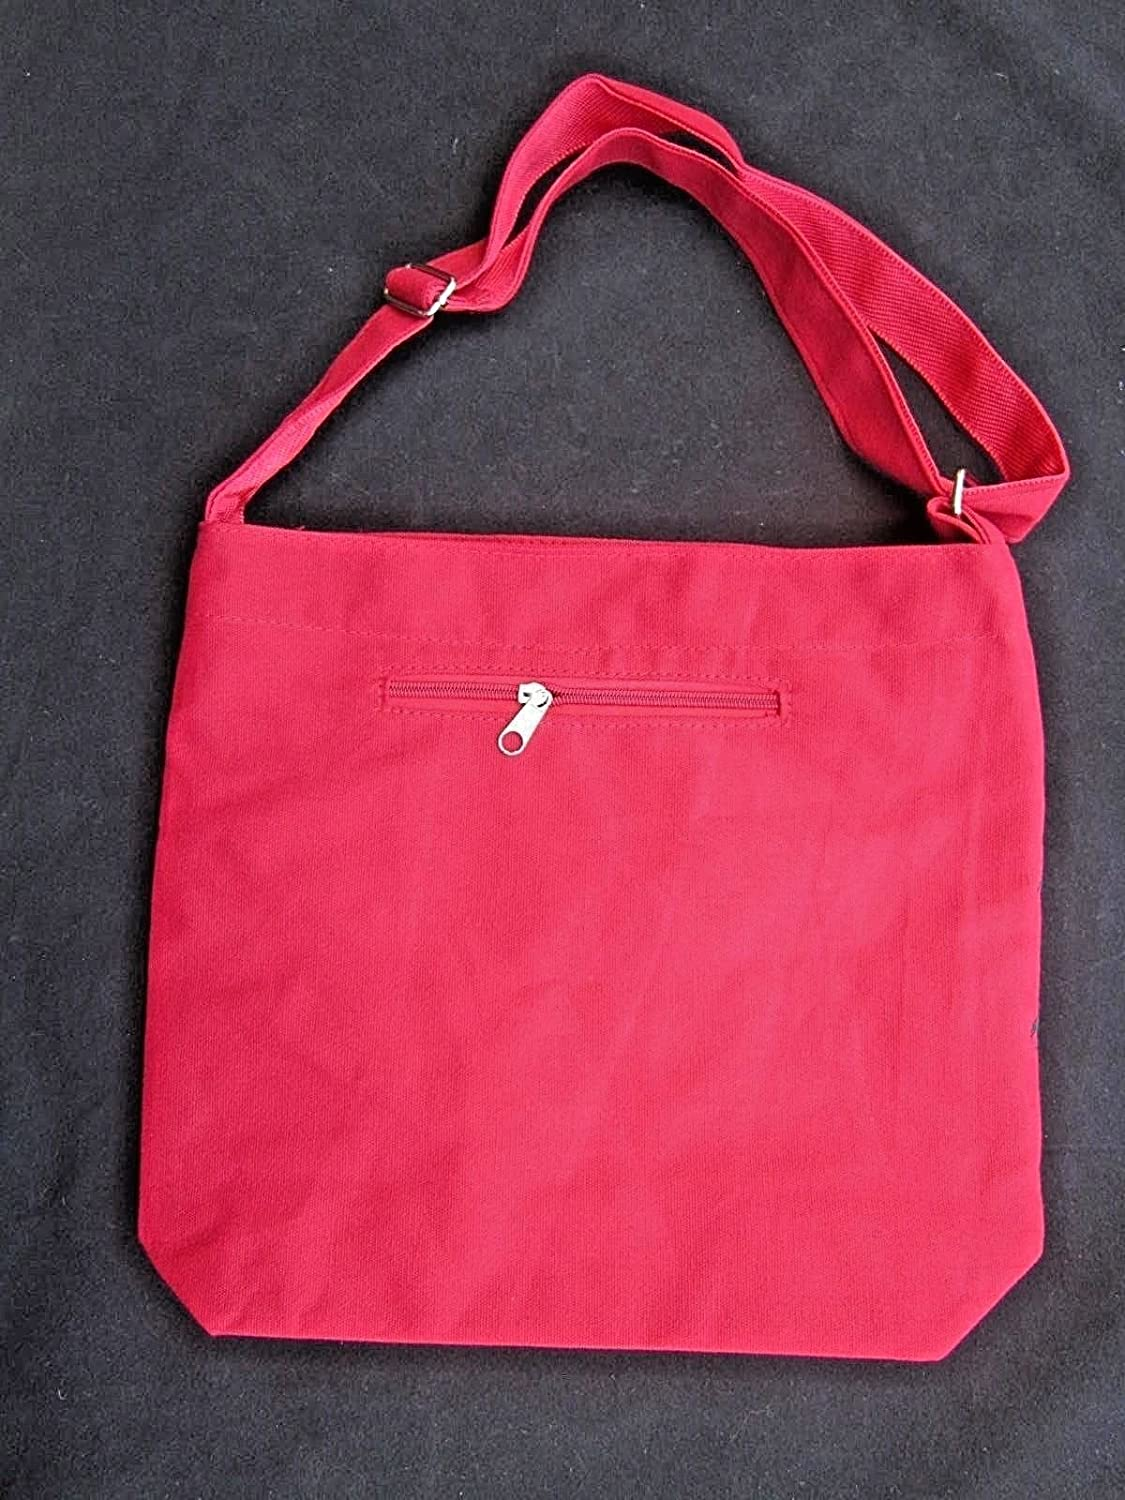 Chinese Messenger Bag in Red Canvas with Embroidered Black Dragon Design